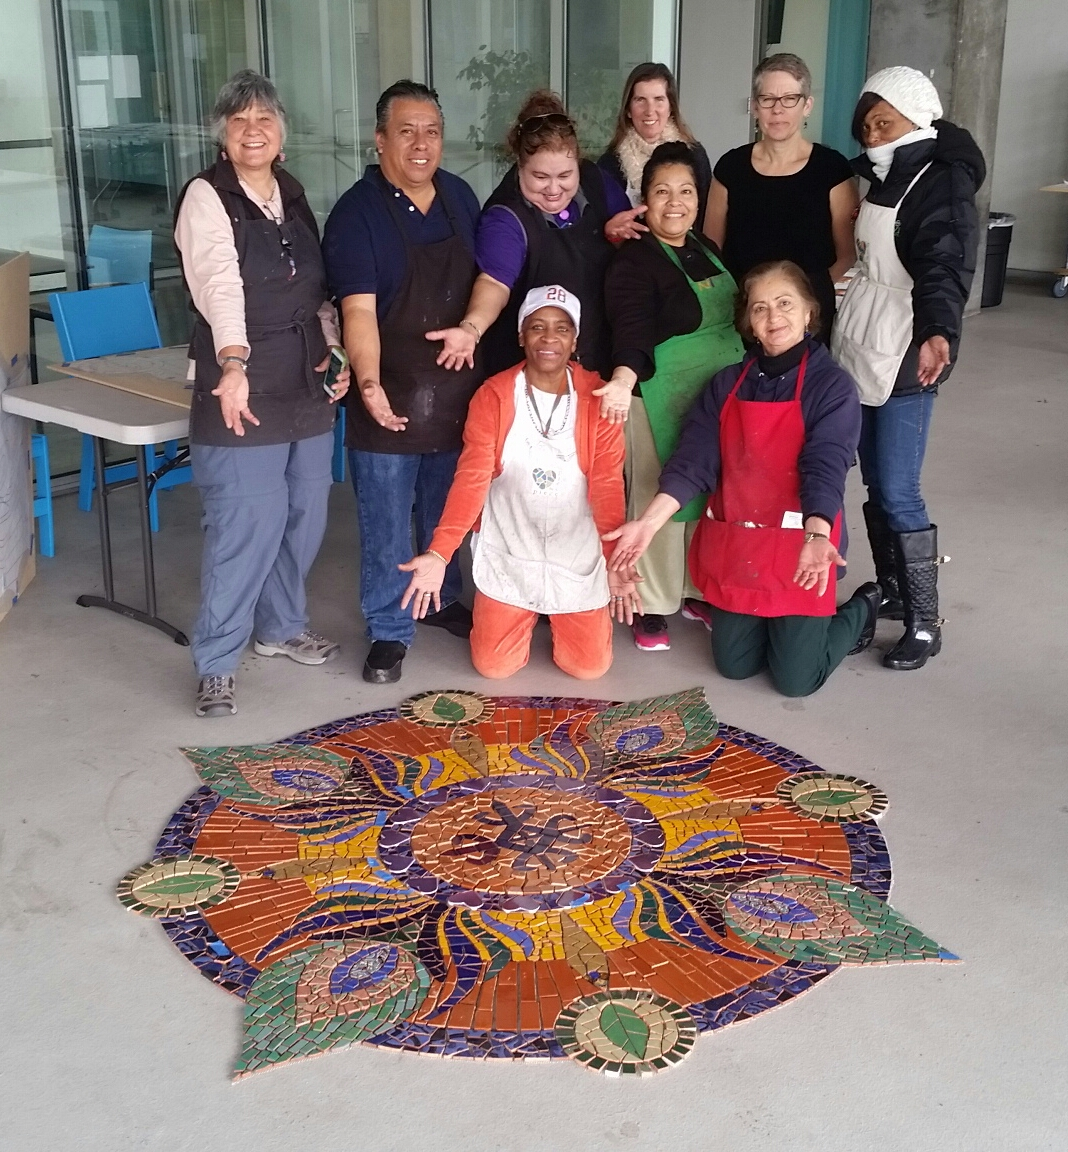 piece-by-piece-artisan-team-with-mandala-mural-commission.jpg